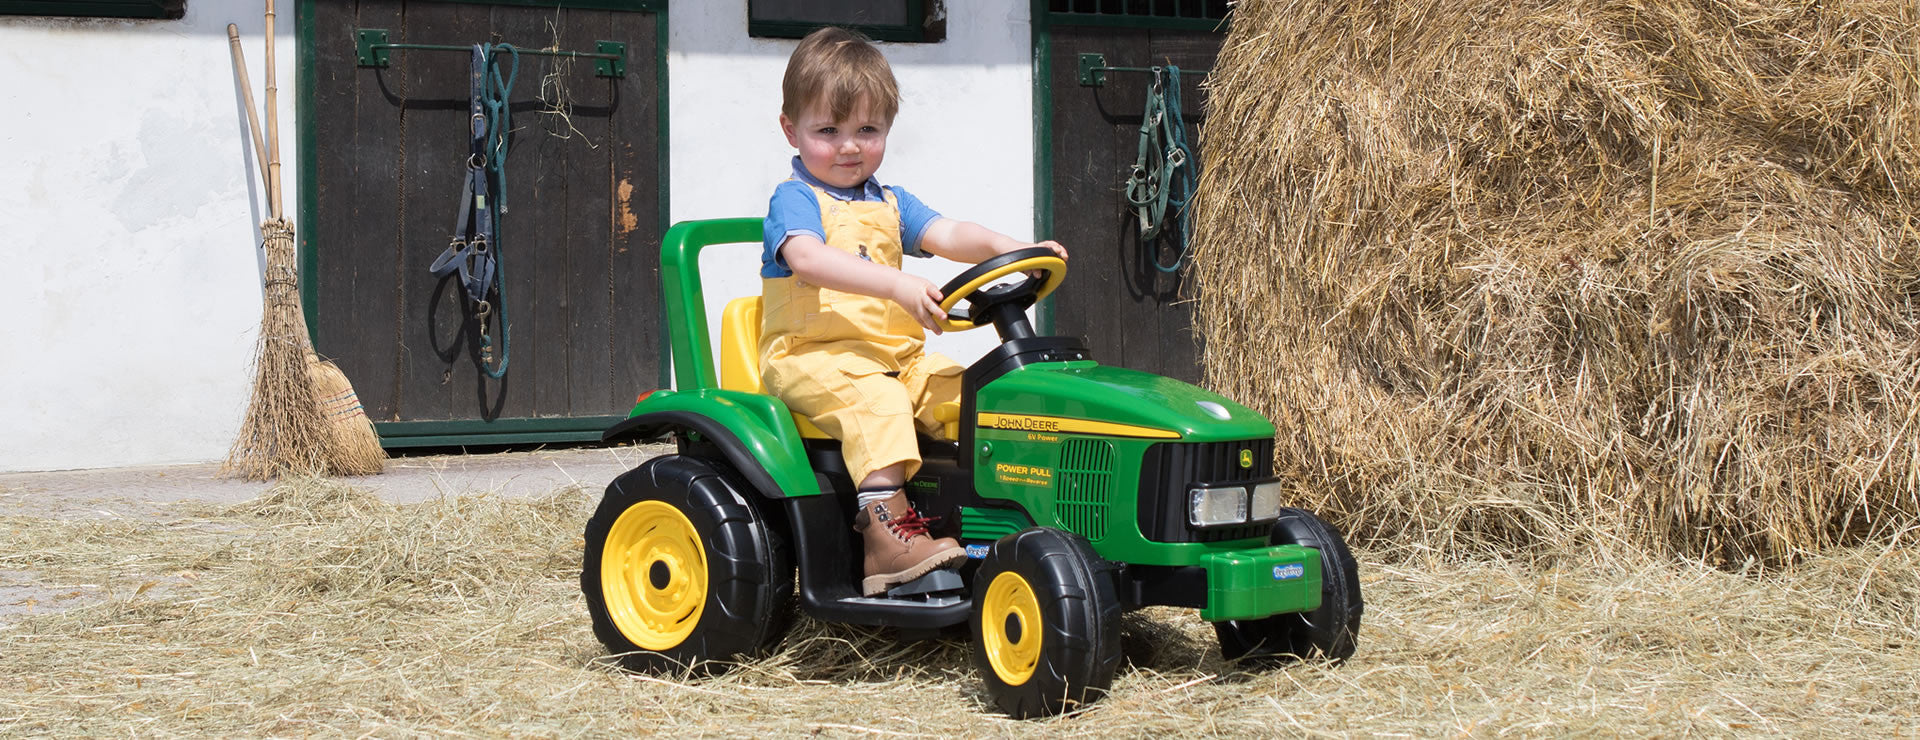 Peg Perego John Deere Power Pull 6v Electric Ride-on Kids Tractor